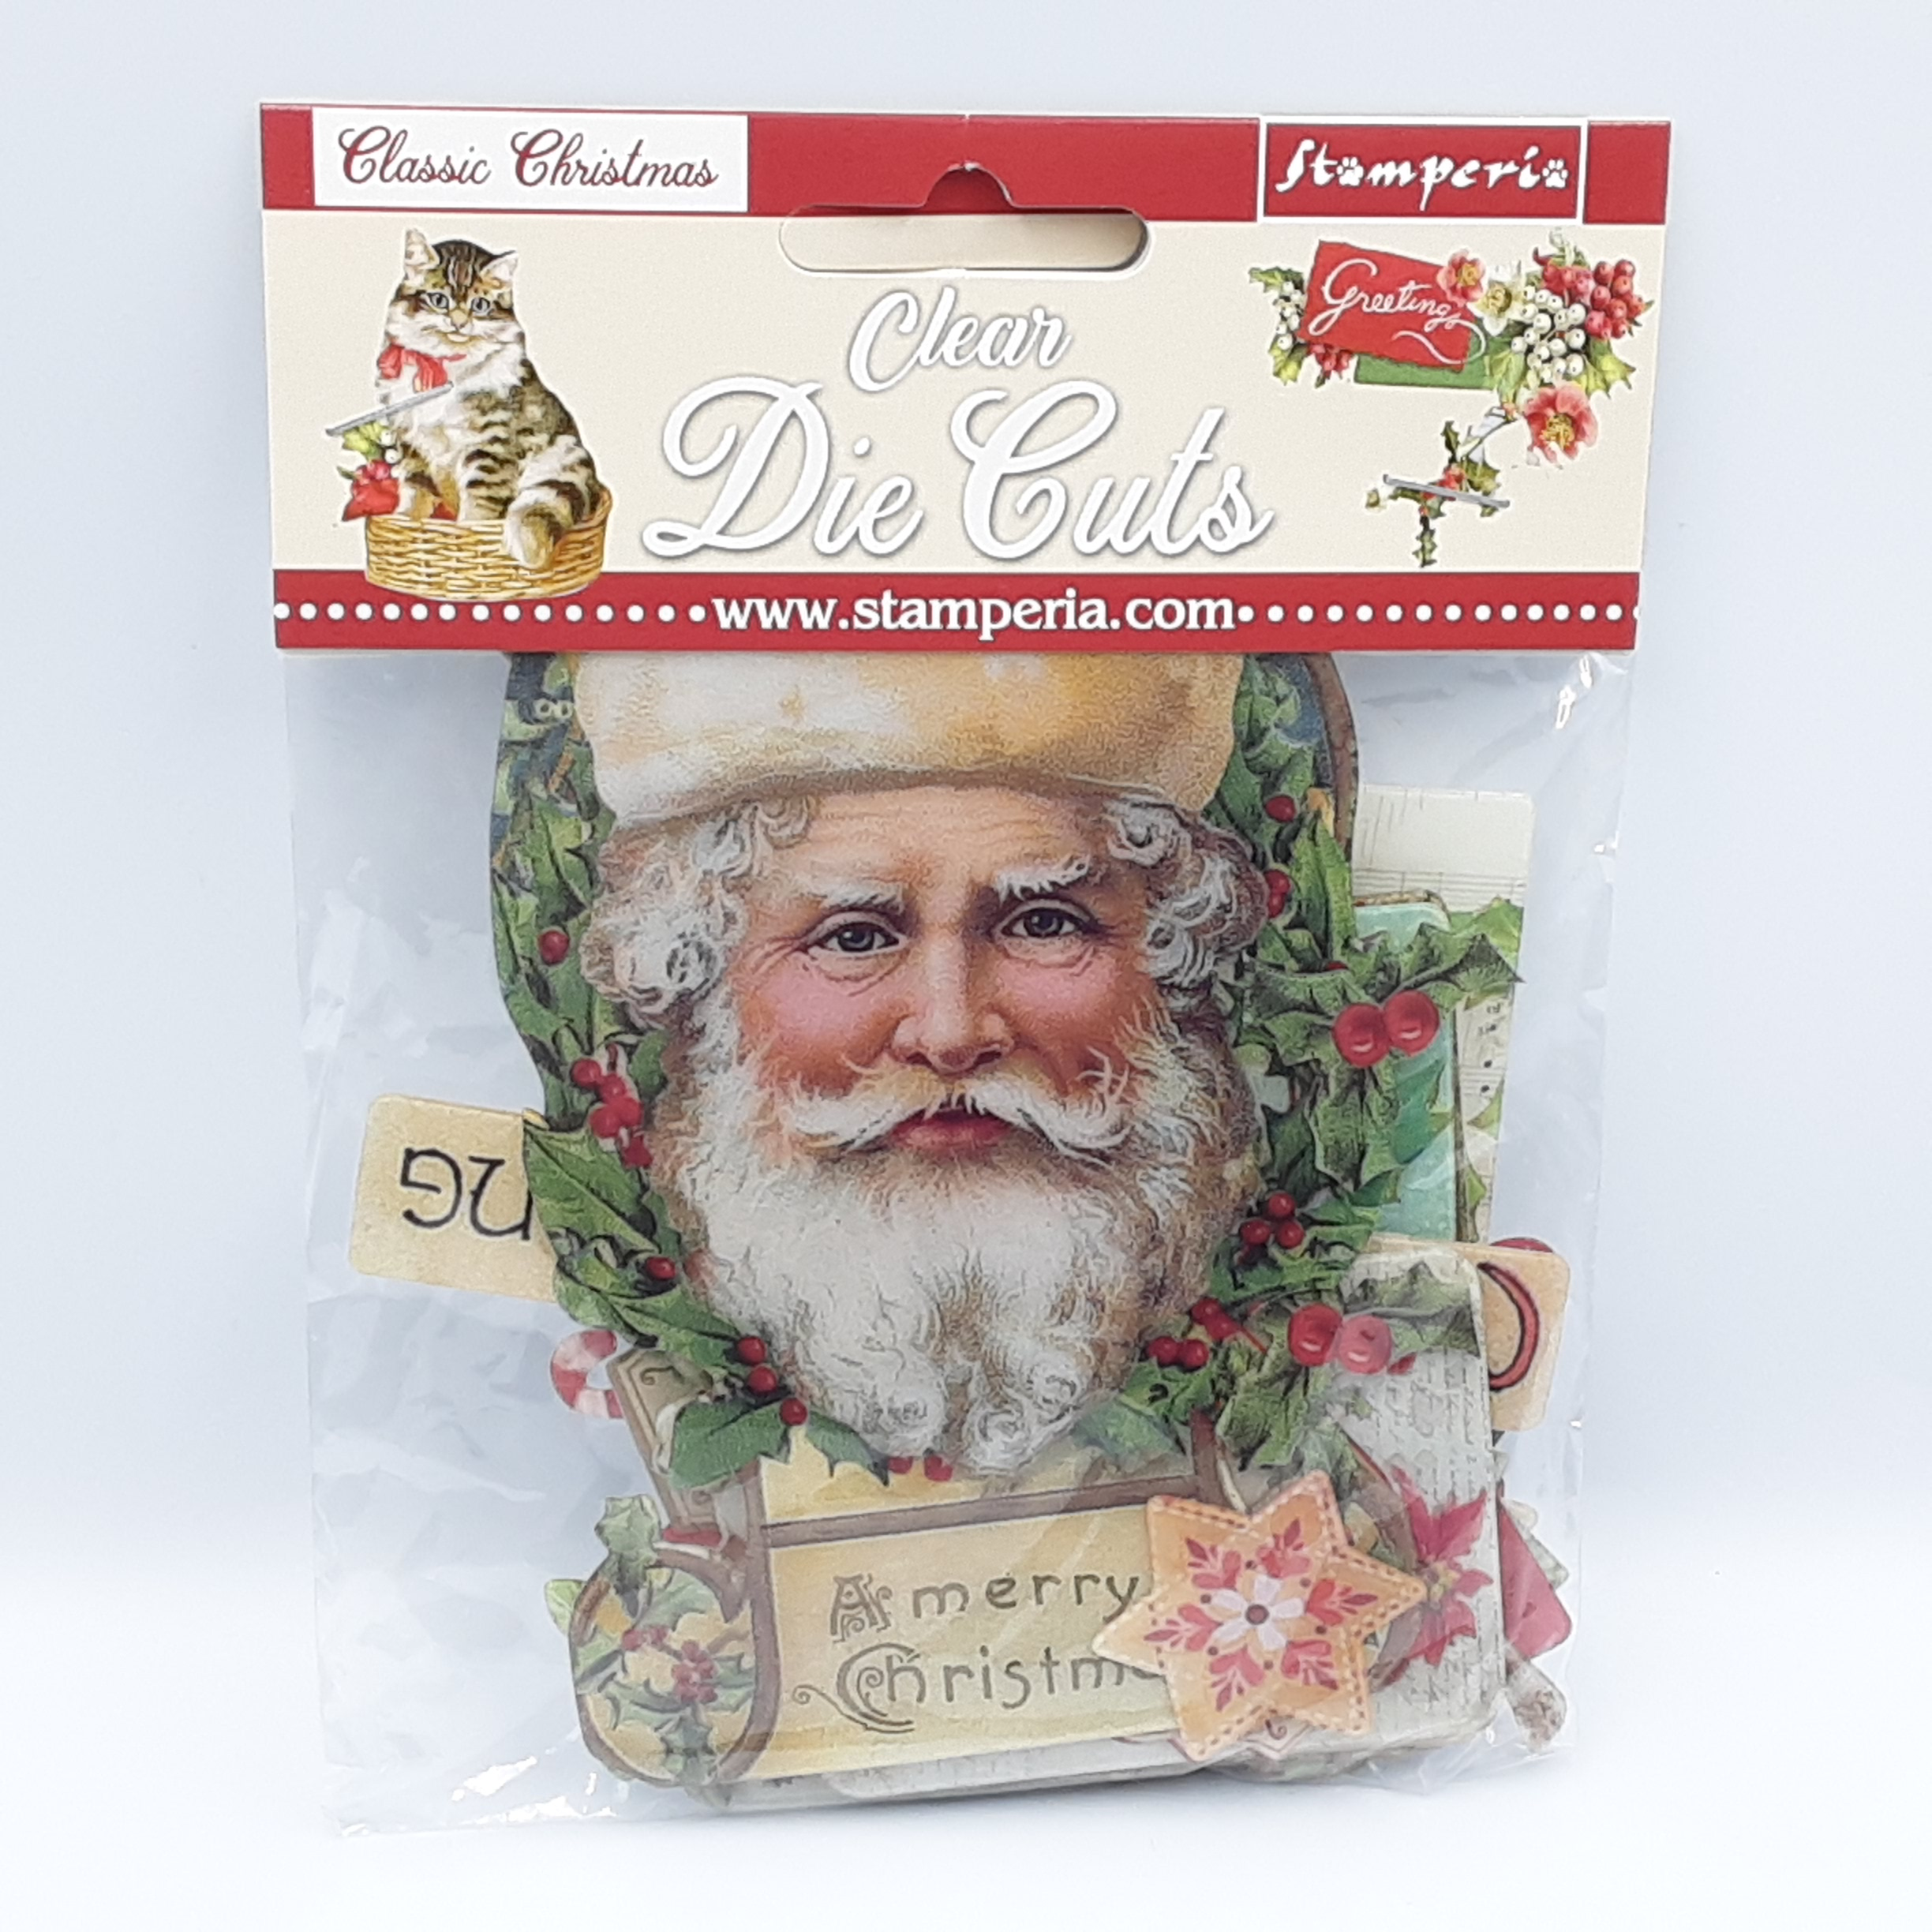 Classic christmas clear die cuts